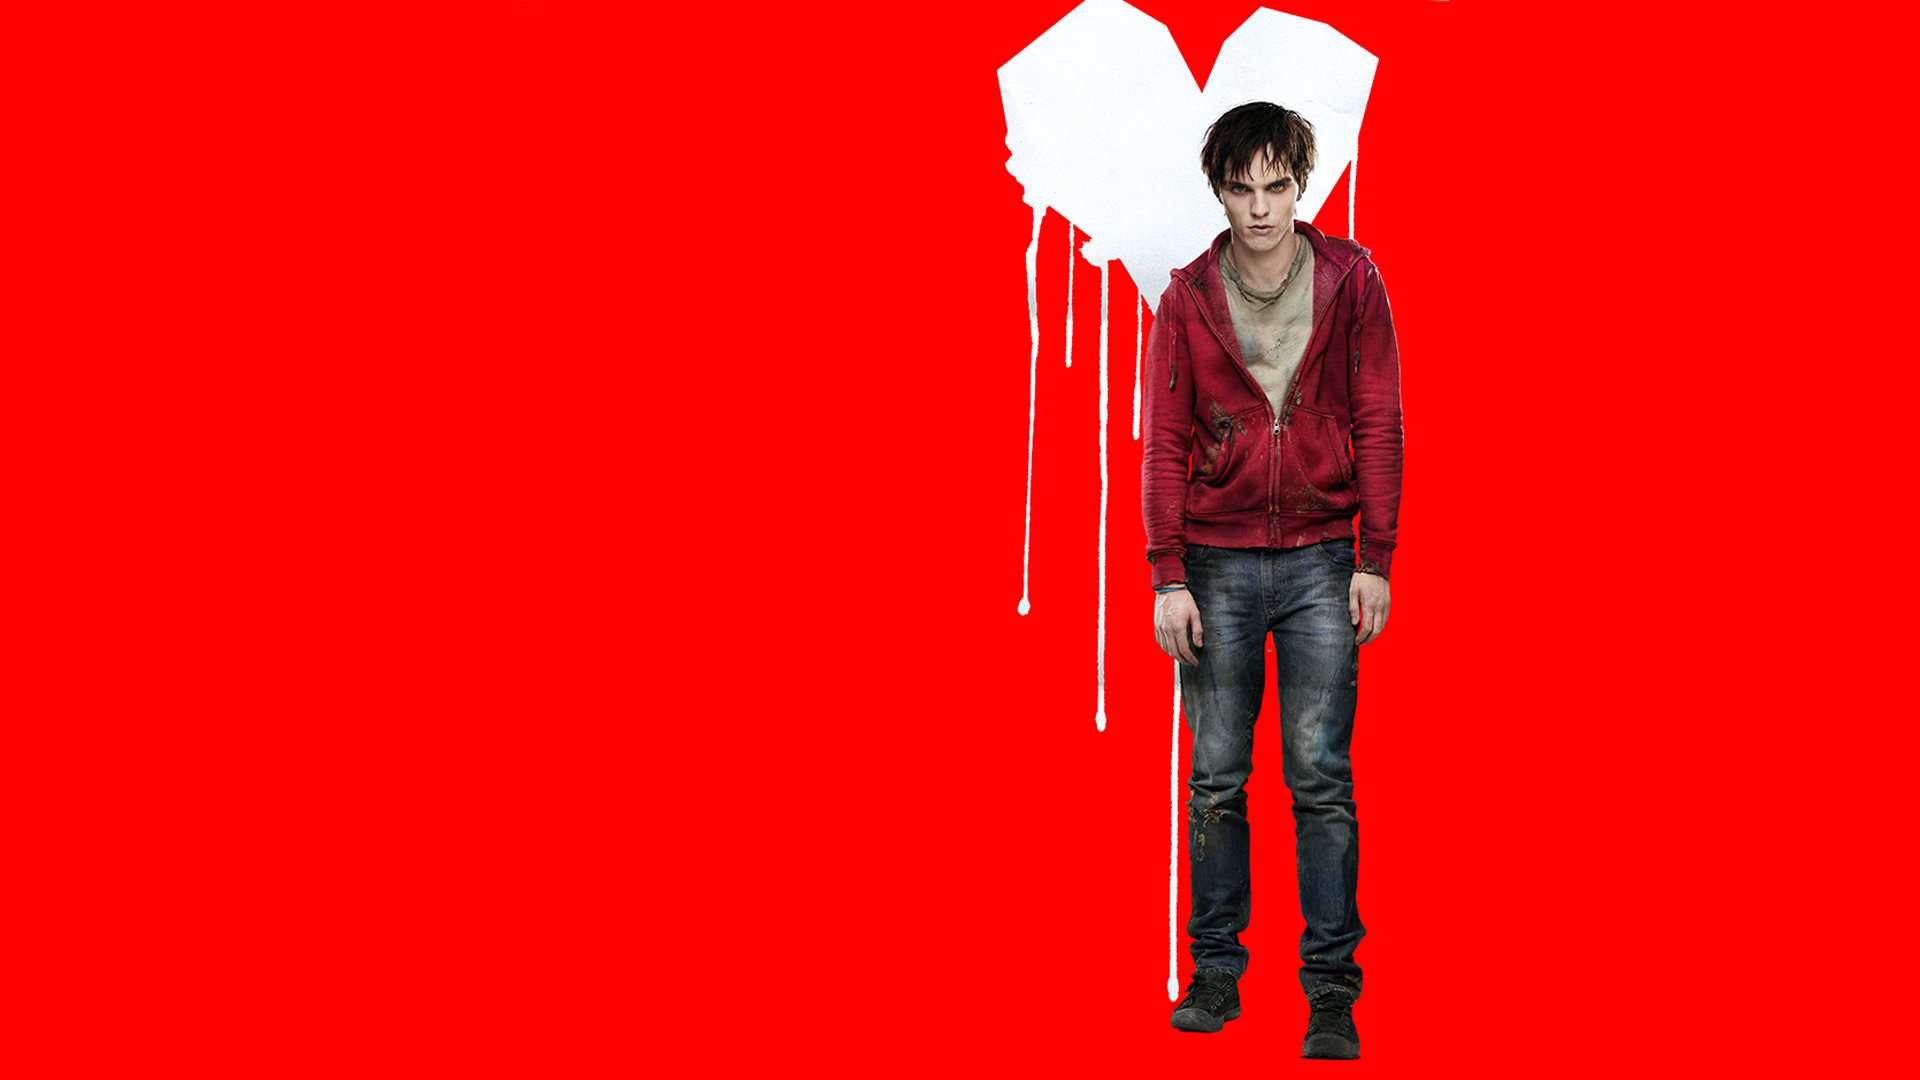 Awesome Warm Bodies free background ID:255004 for full hd computer